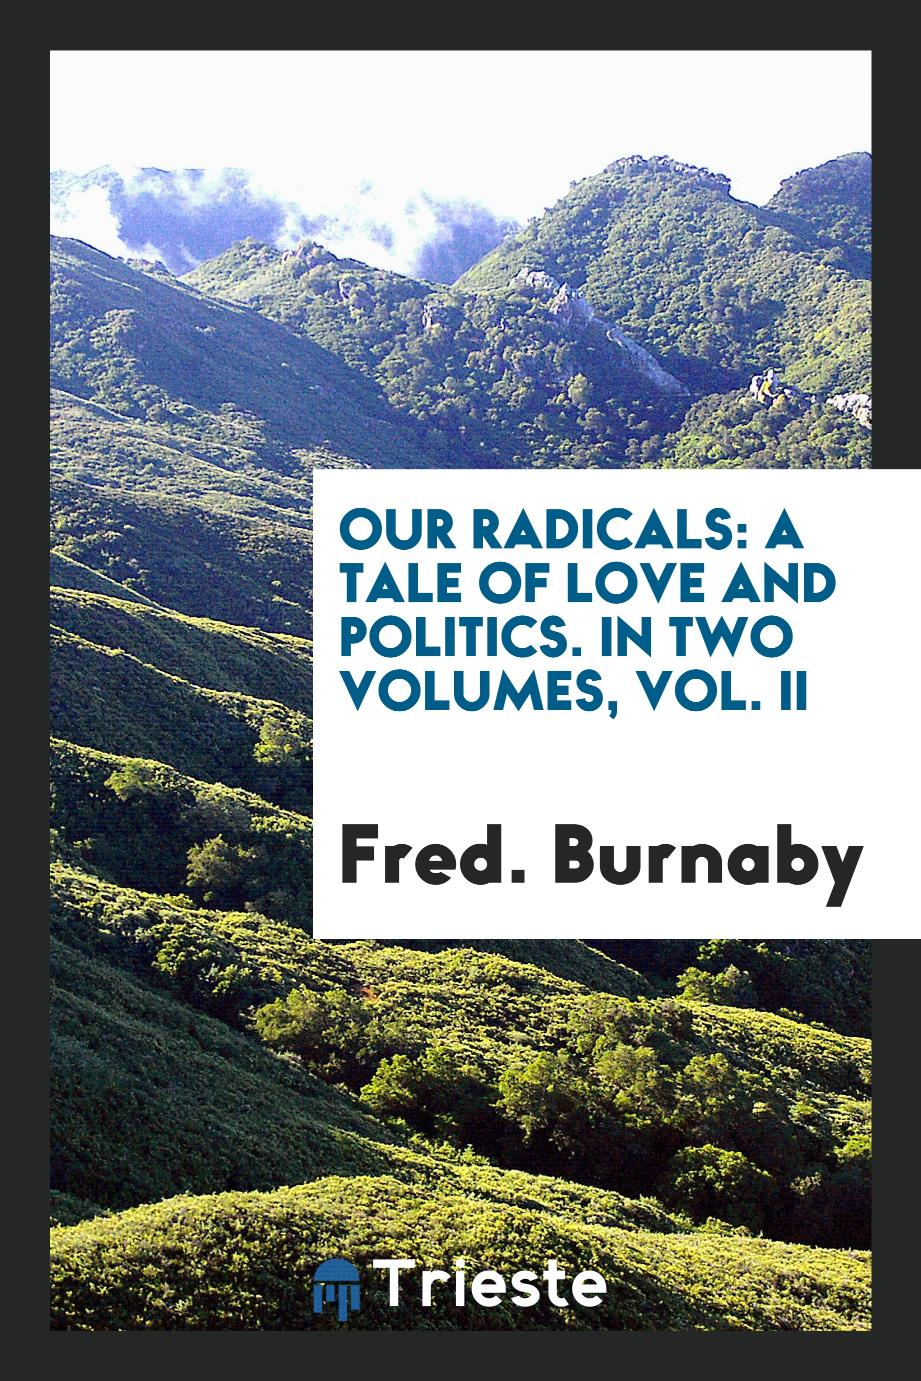 Our Radicals: A Tale of Love and Politics. In Two Volumes, Vol. II